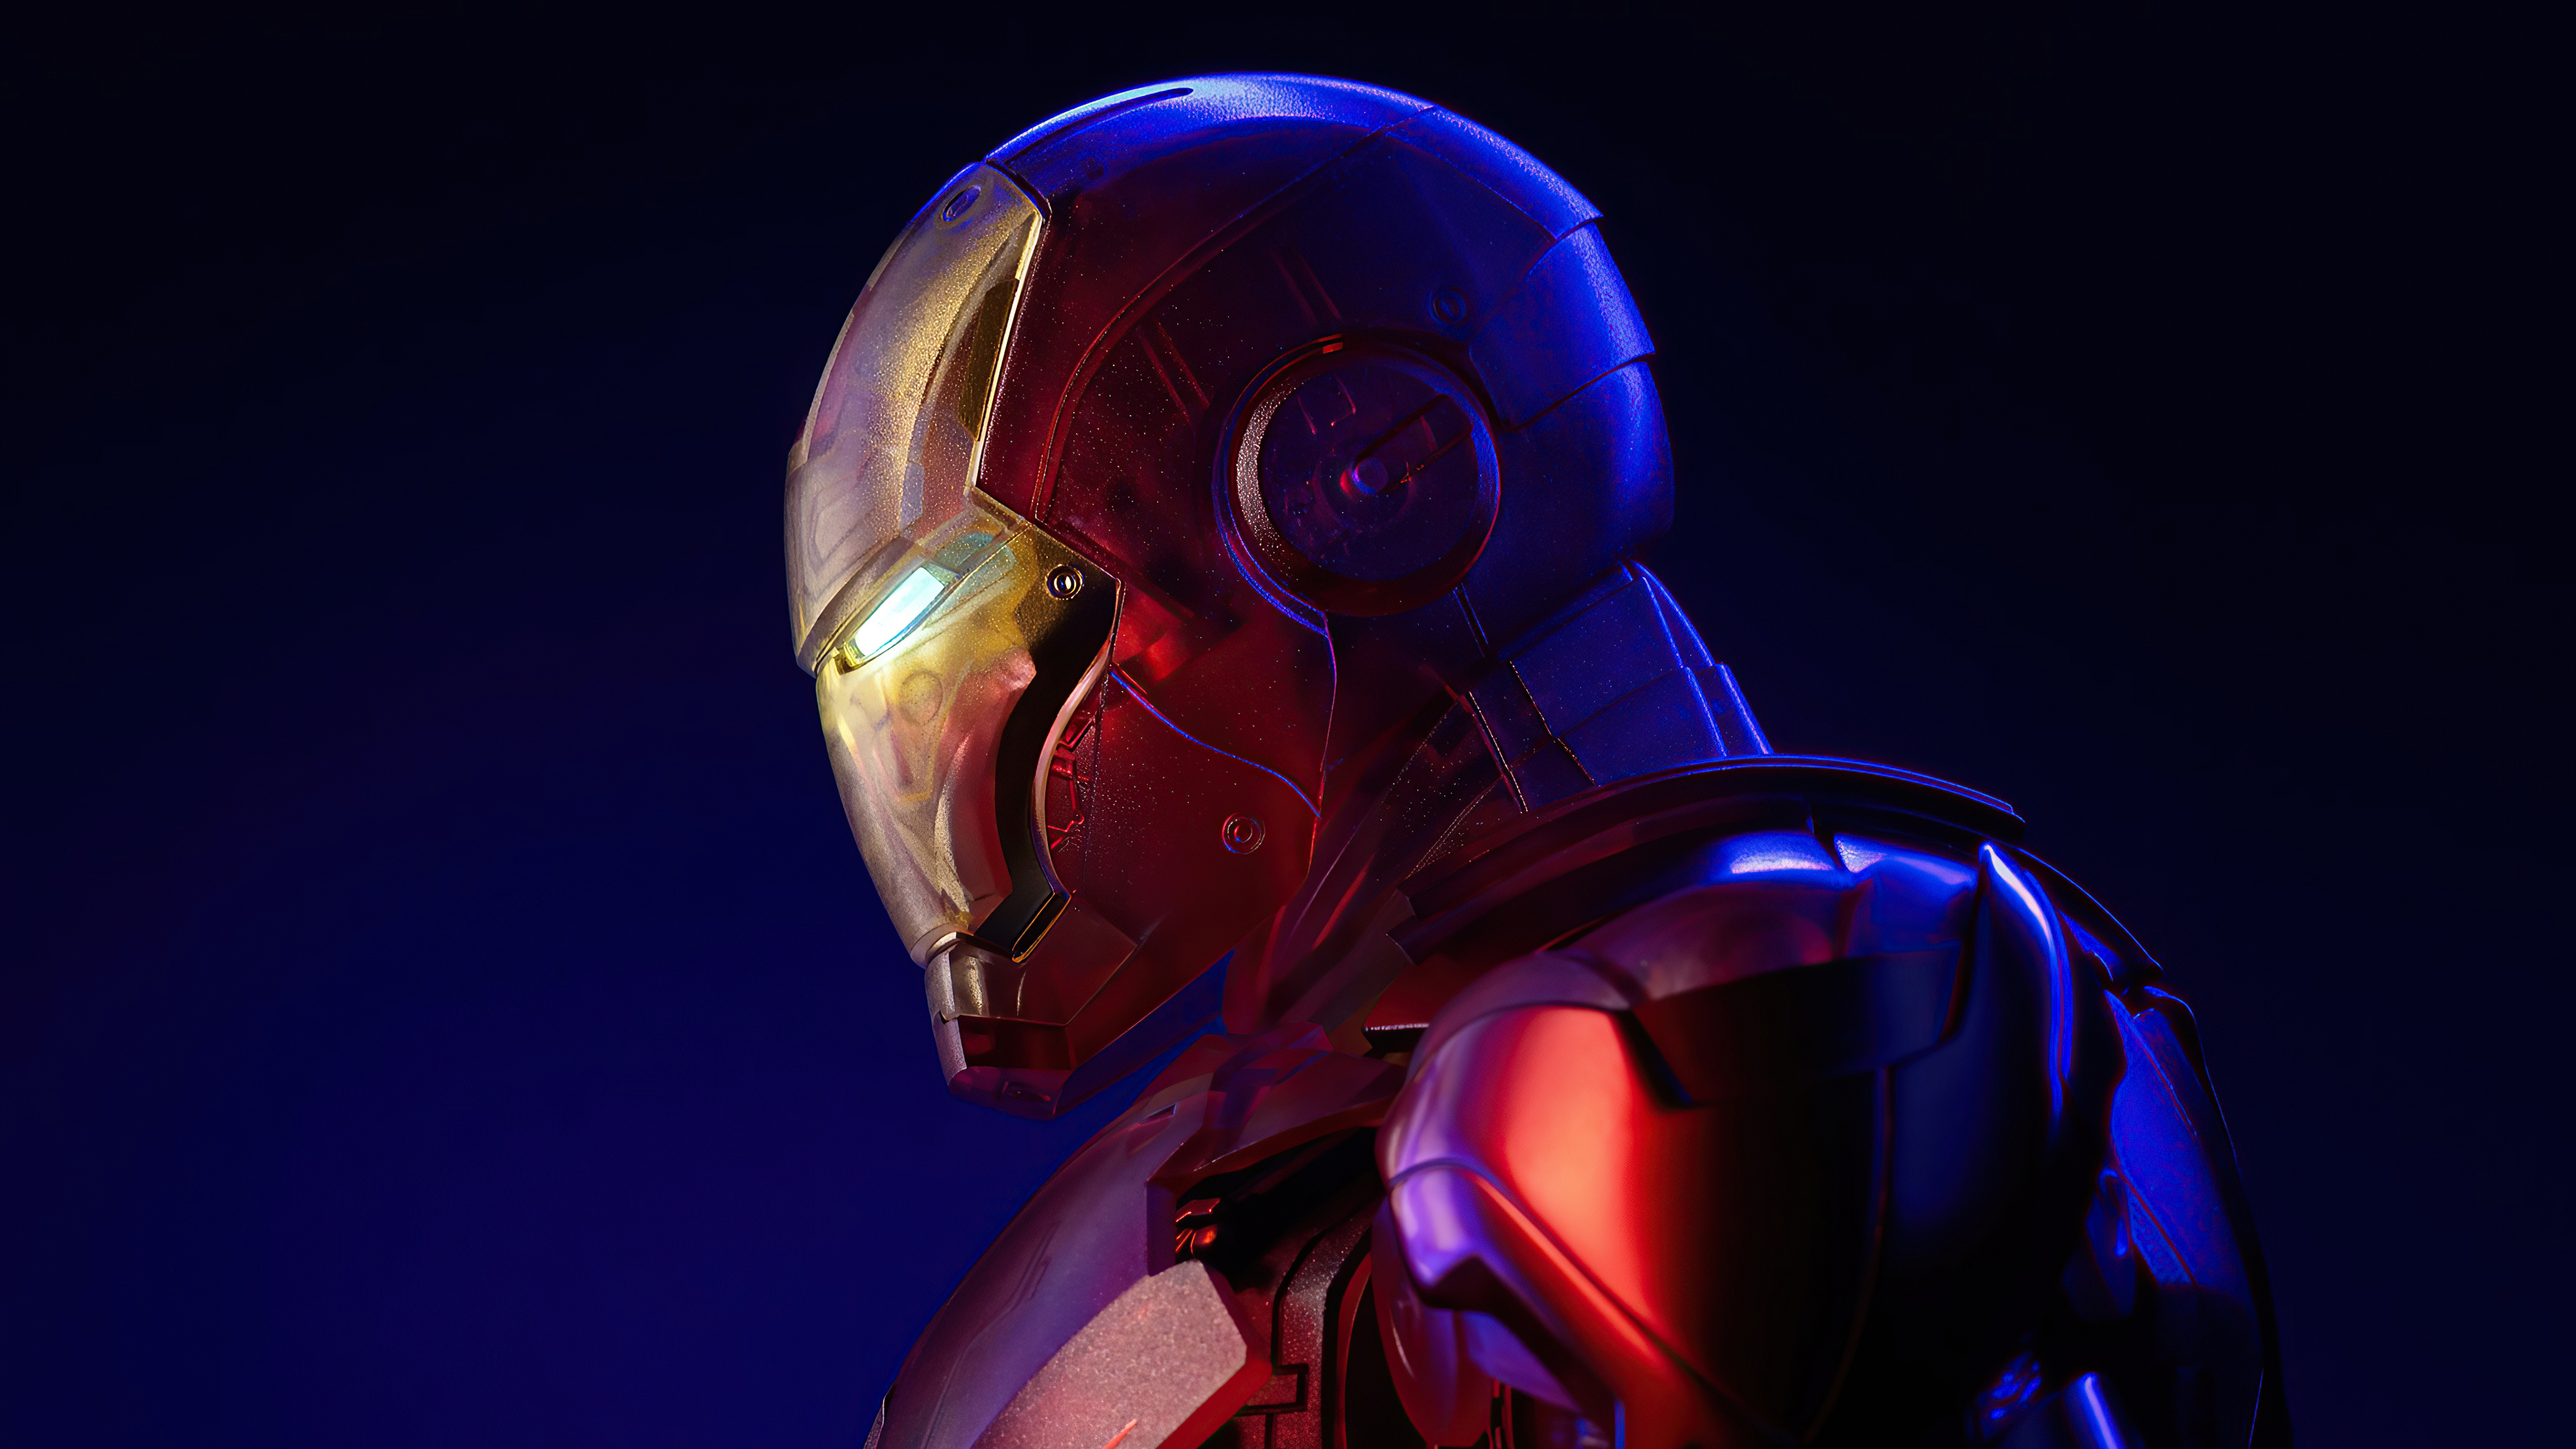 Wallpaper Holographic Iron Man